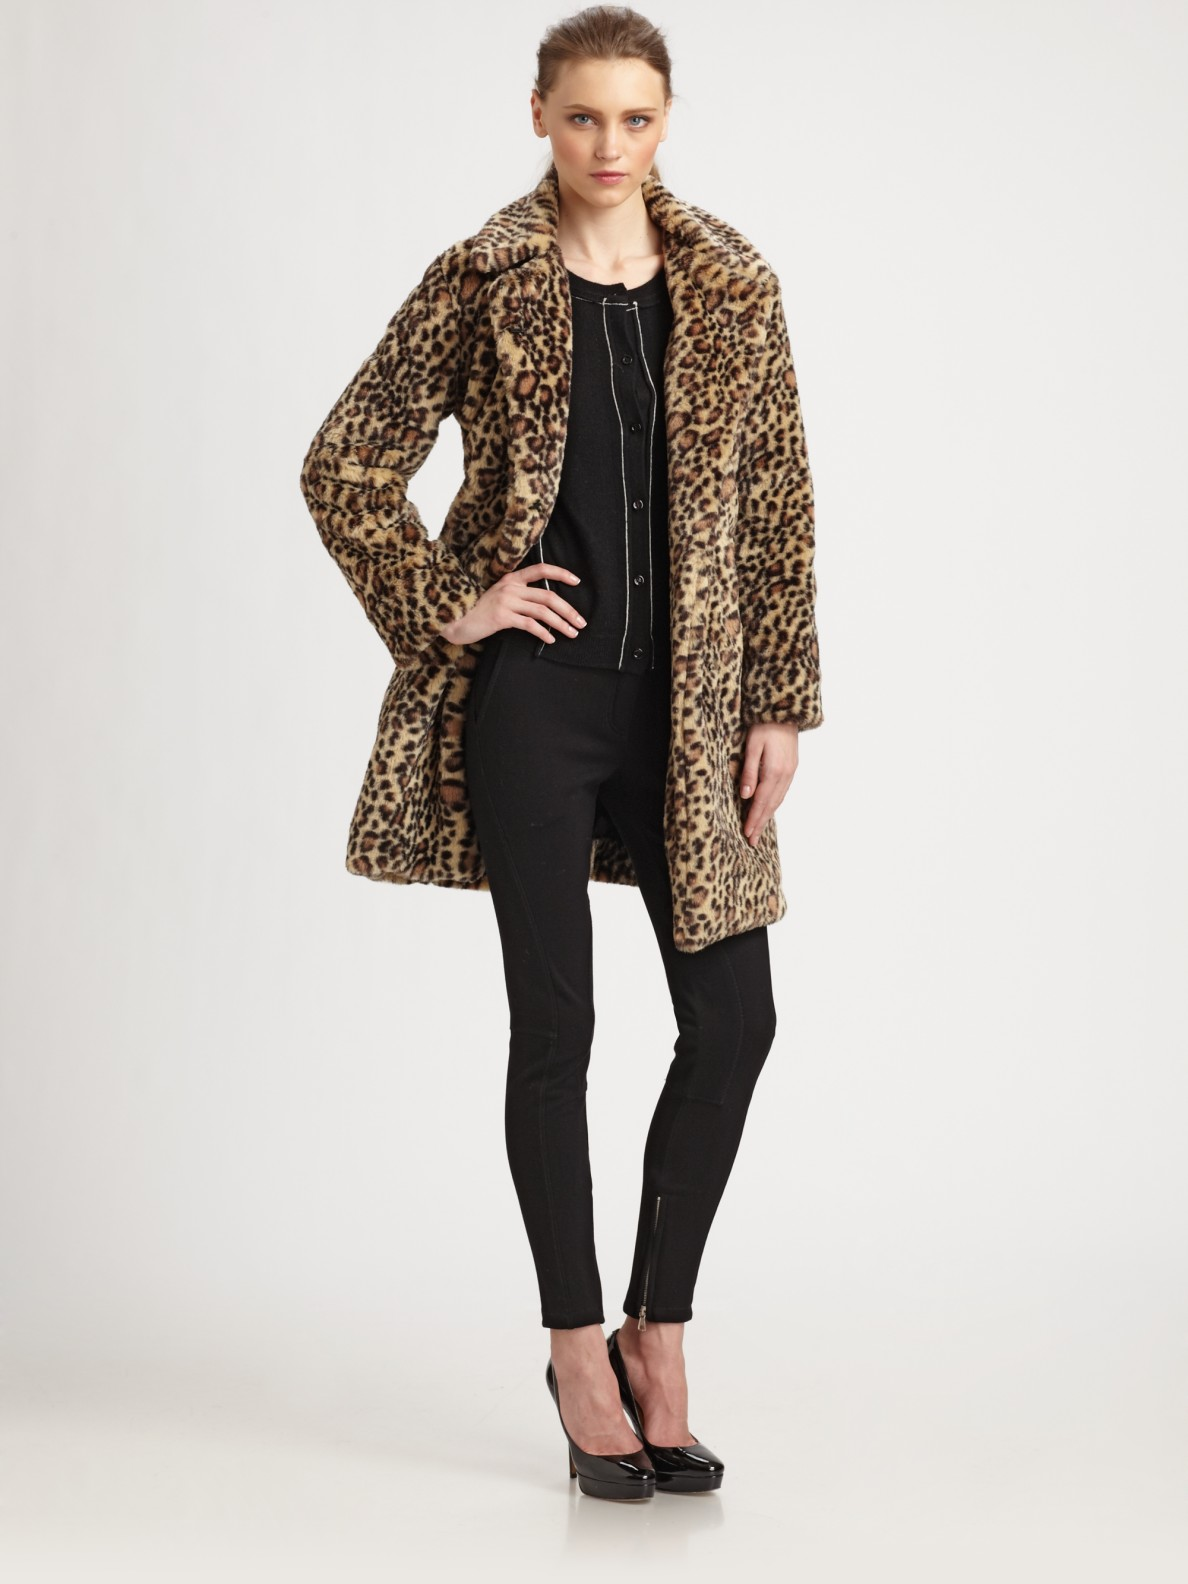 5889b63f8838 Boutique Moschino Faux Fur Cheetah Coat in Natural - Lyst